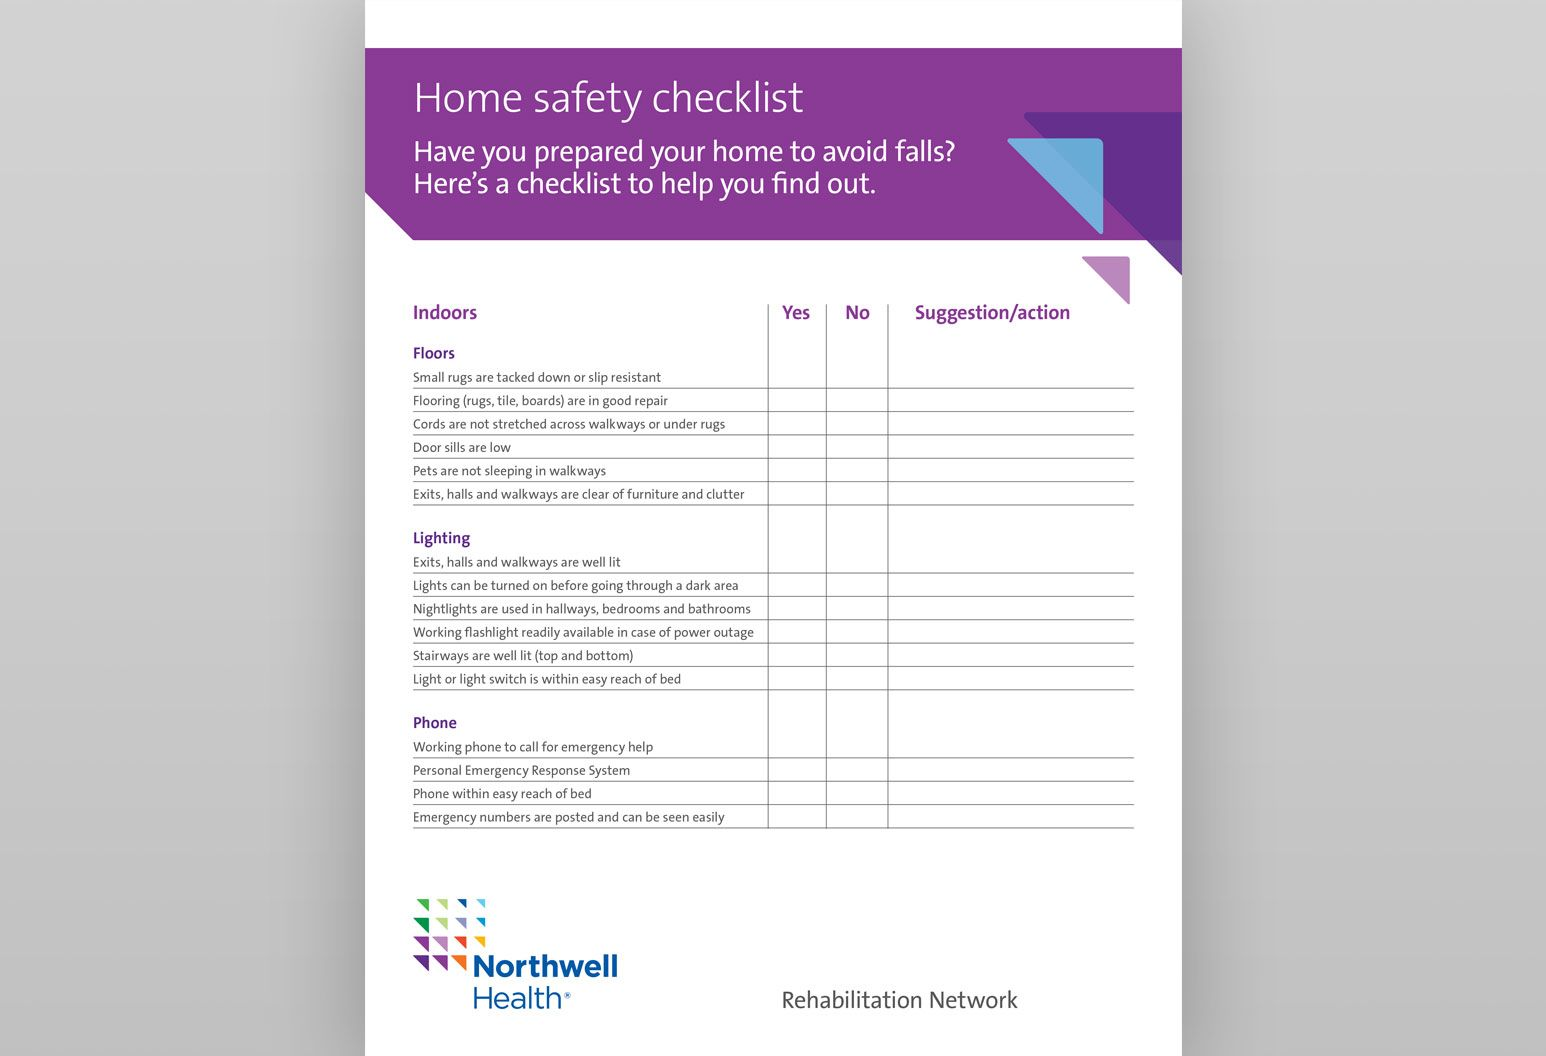 This is the front page of a PDF called Home Safety Checklist. It has a purple design with constellations at the top of the page, and a checklist of things to do to keep your home safe.